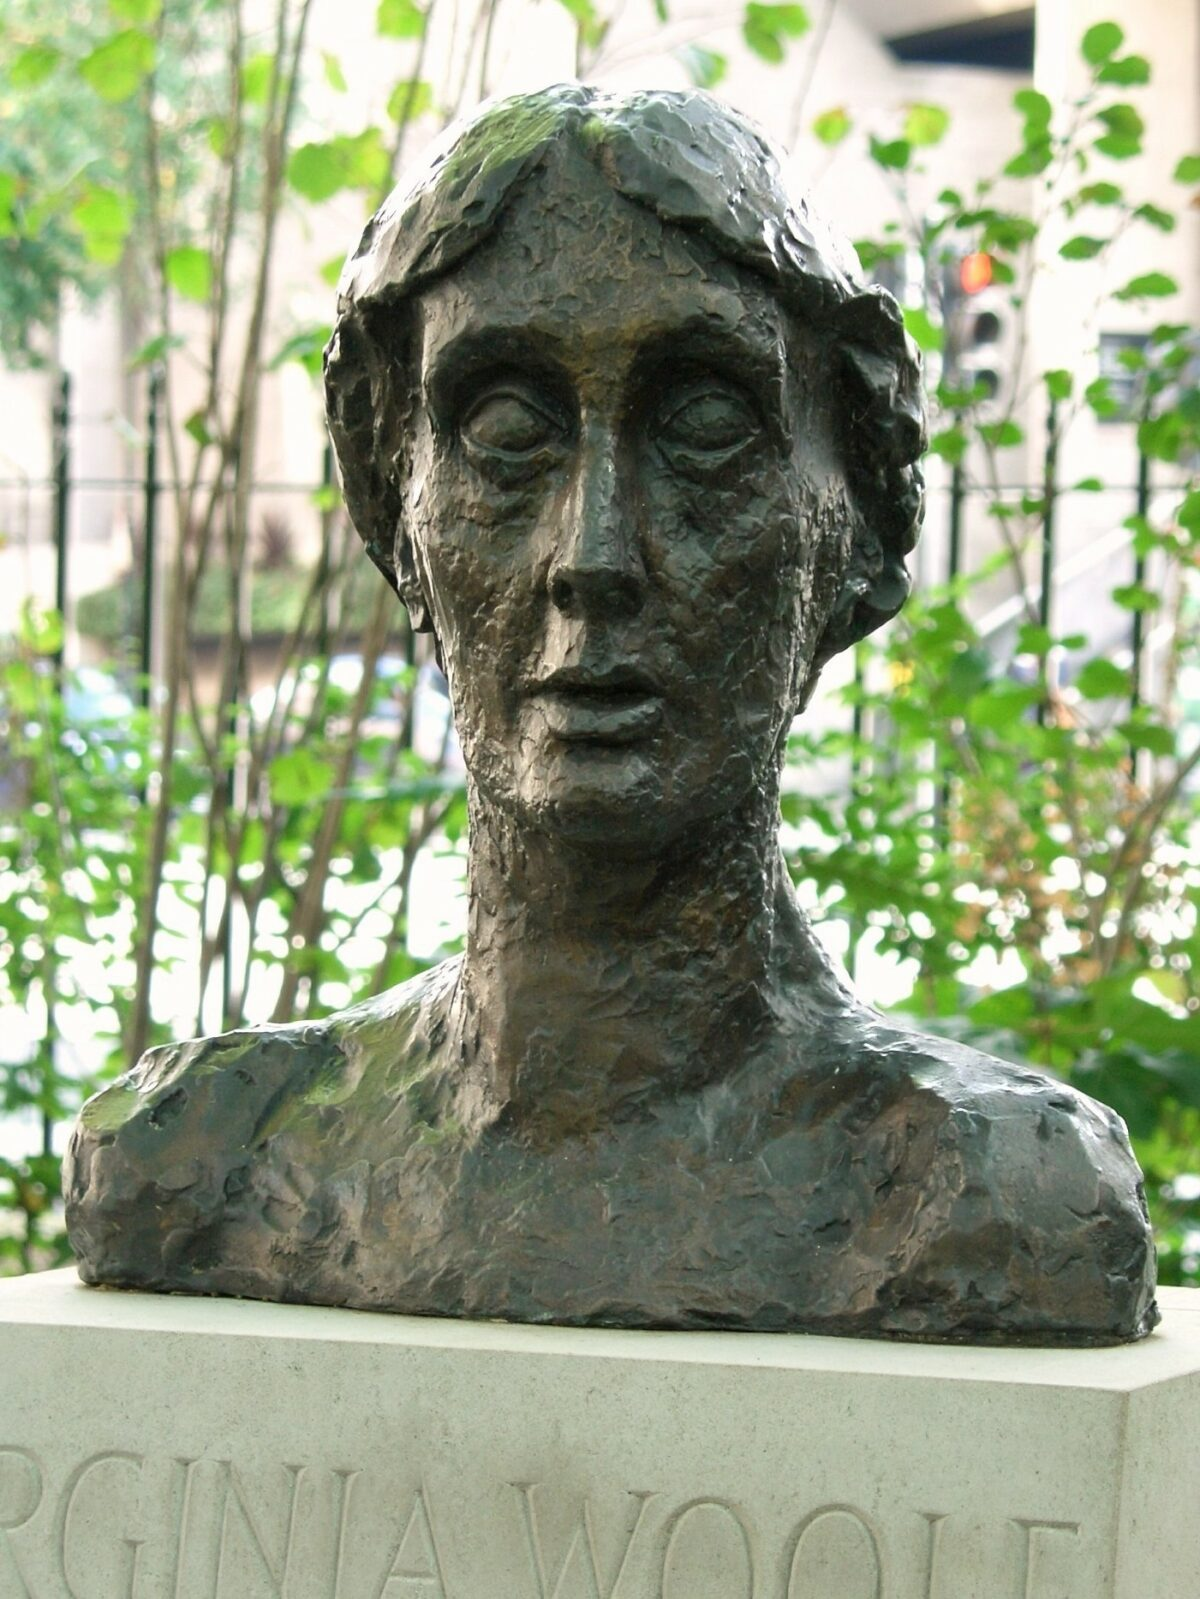 Nicolas Boileau : Woolf's feminisms – peace, freedom and subjection